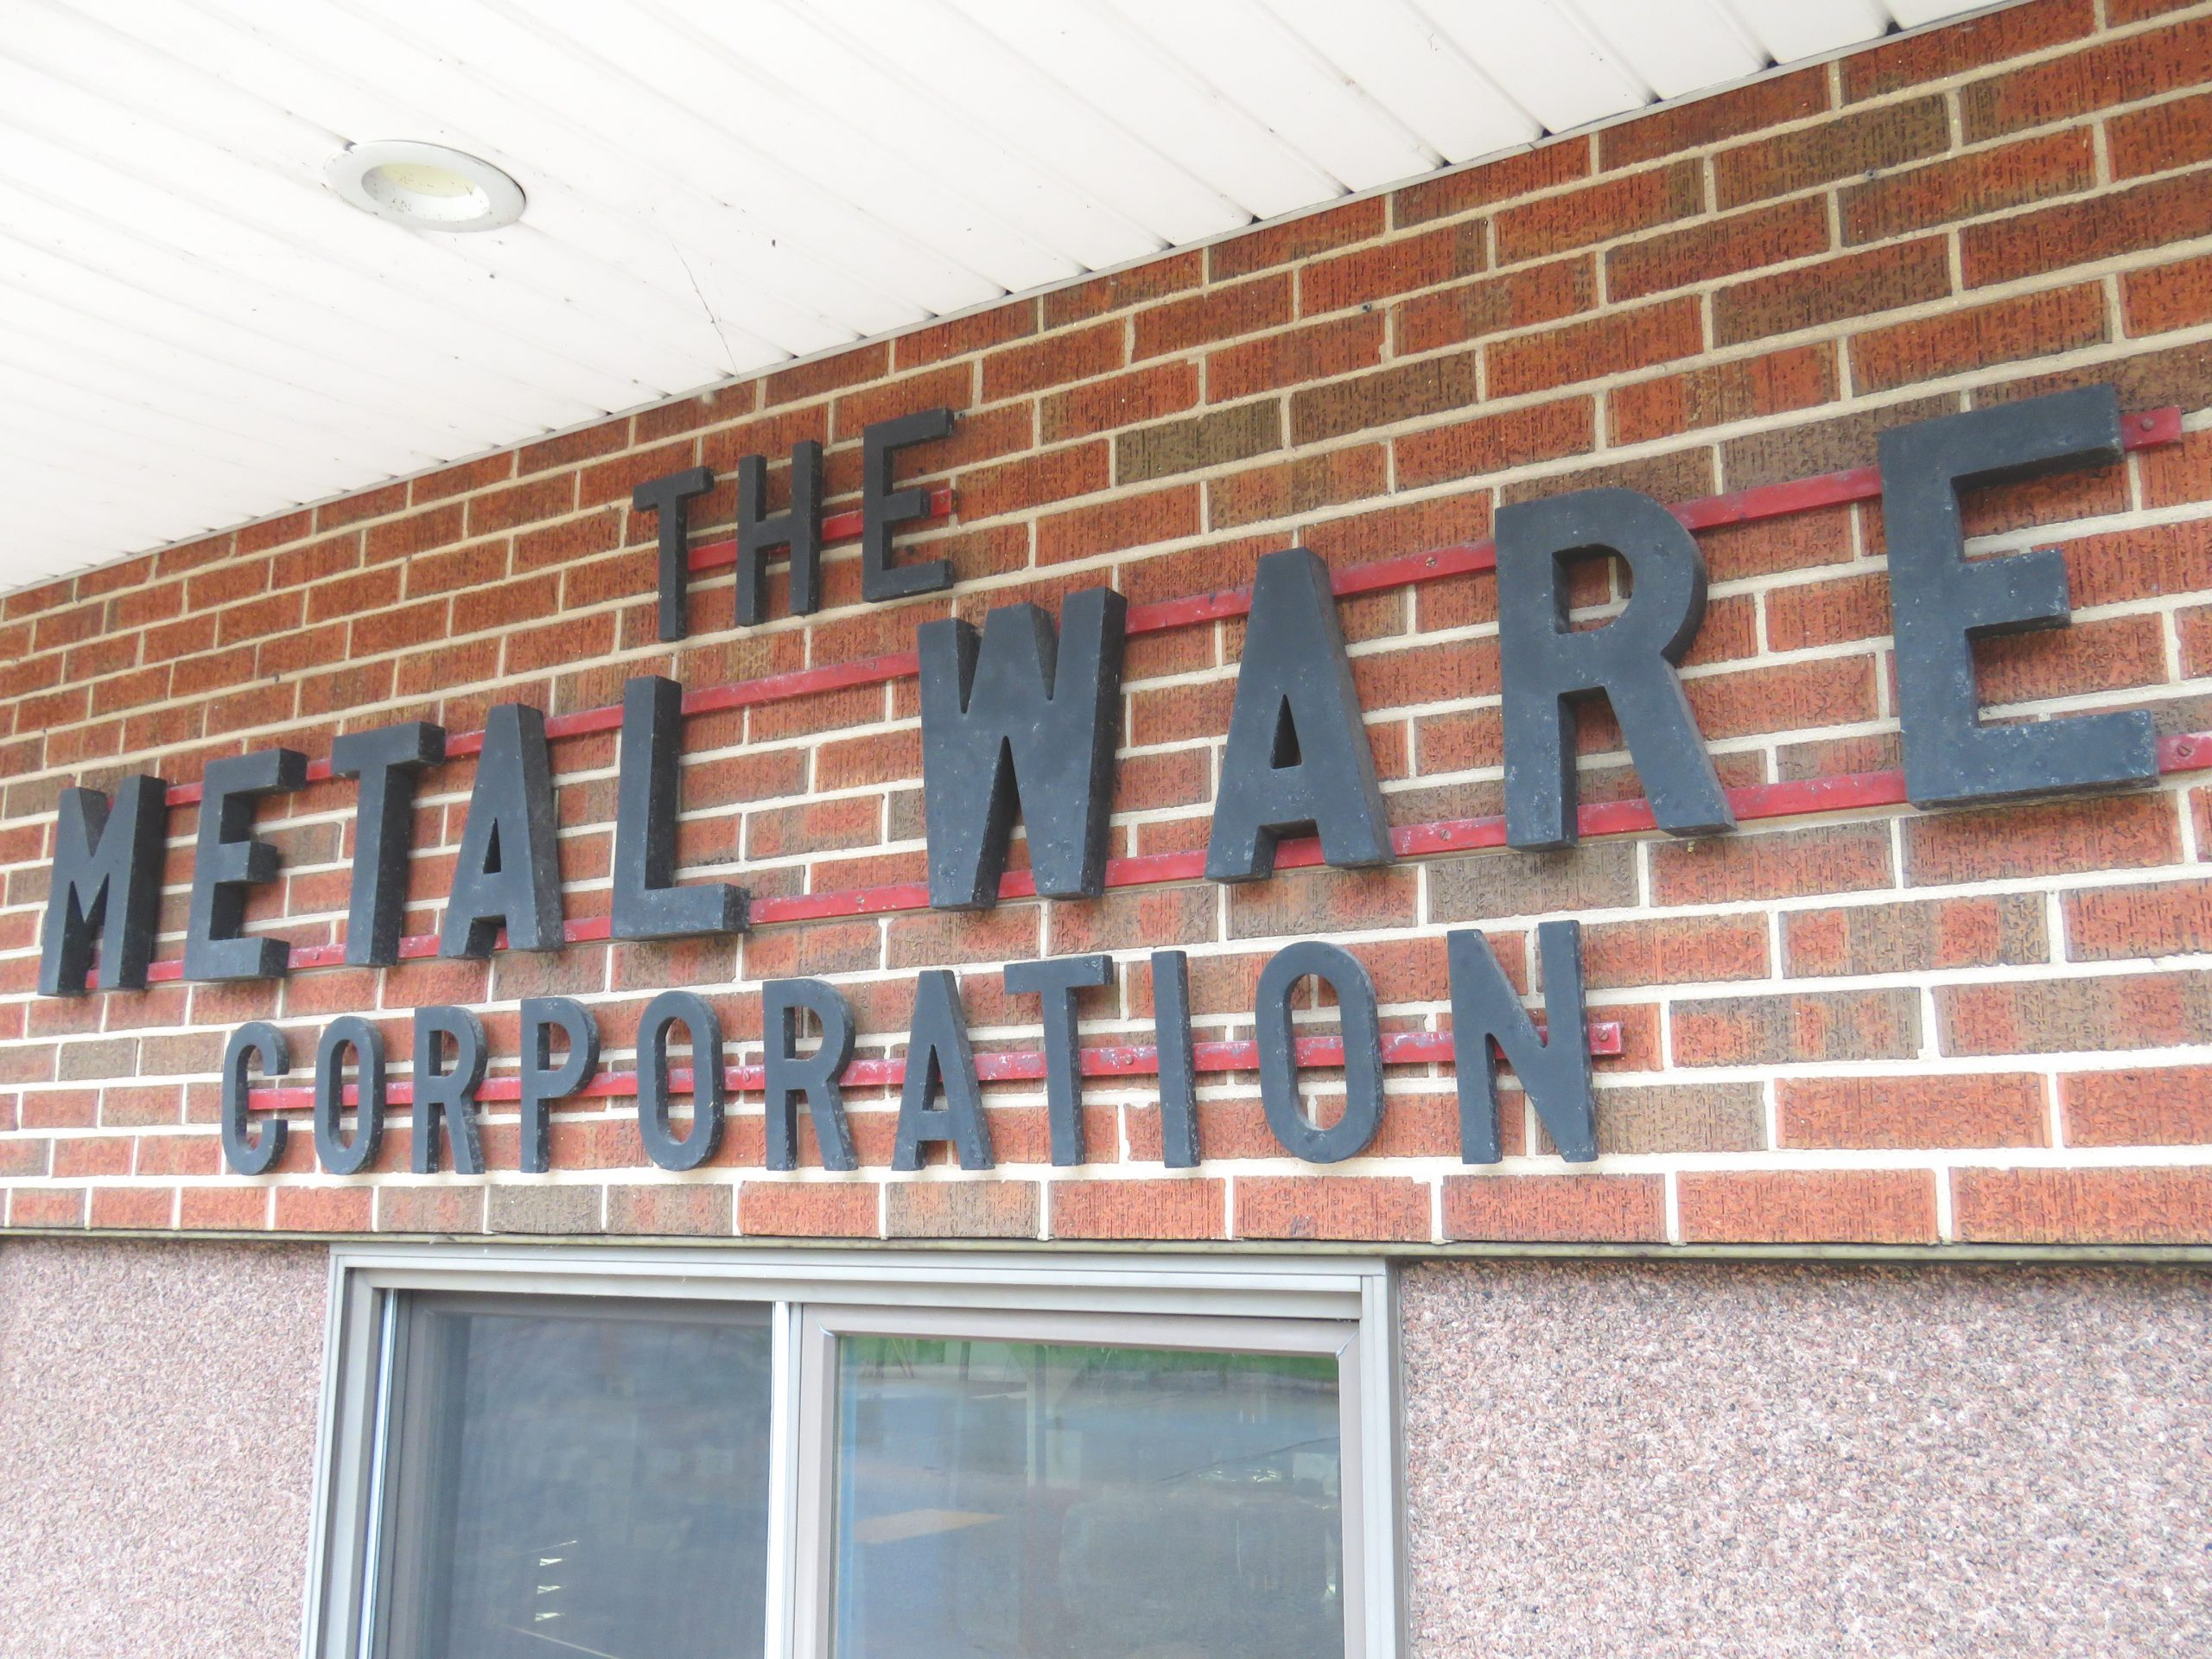 Metal Ware Celebrates 100 Years in Business by Looking to Expand